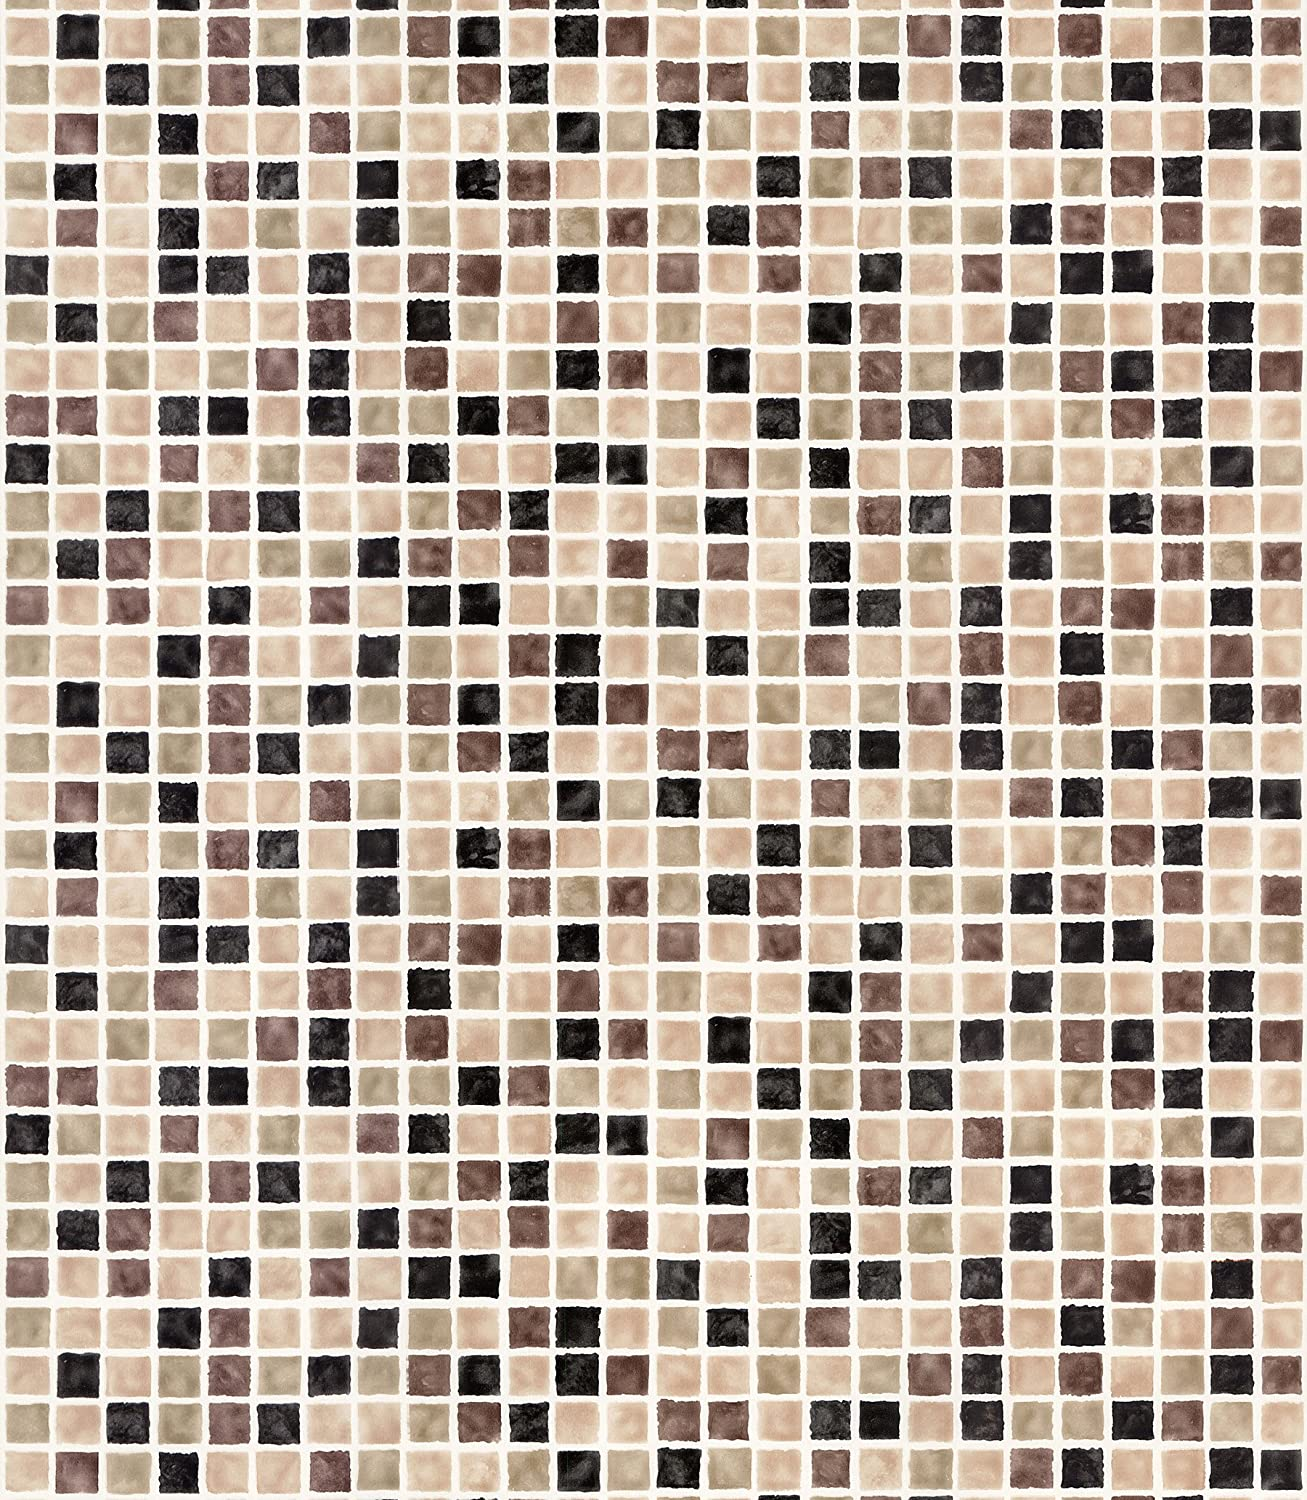 Brewster 414-59632 Corfu Brown Tiles Wallpaper